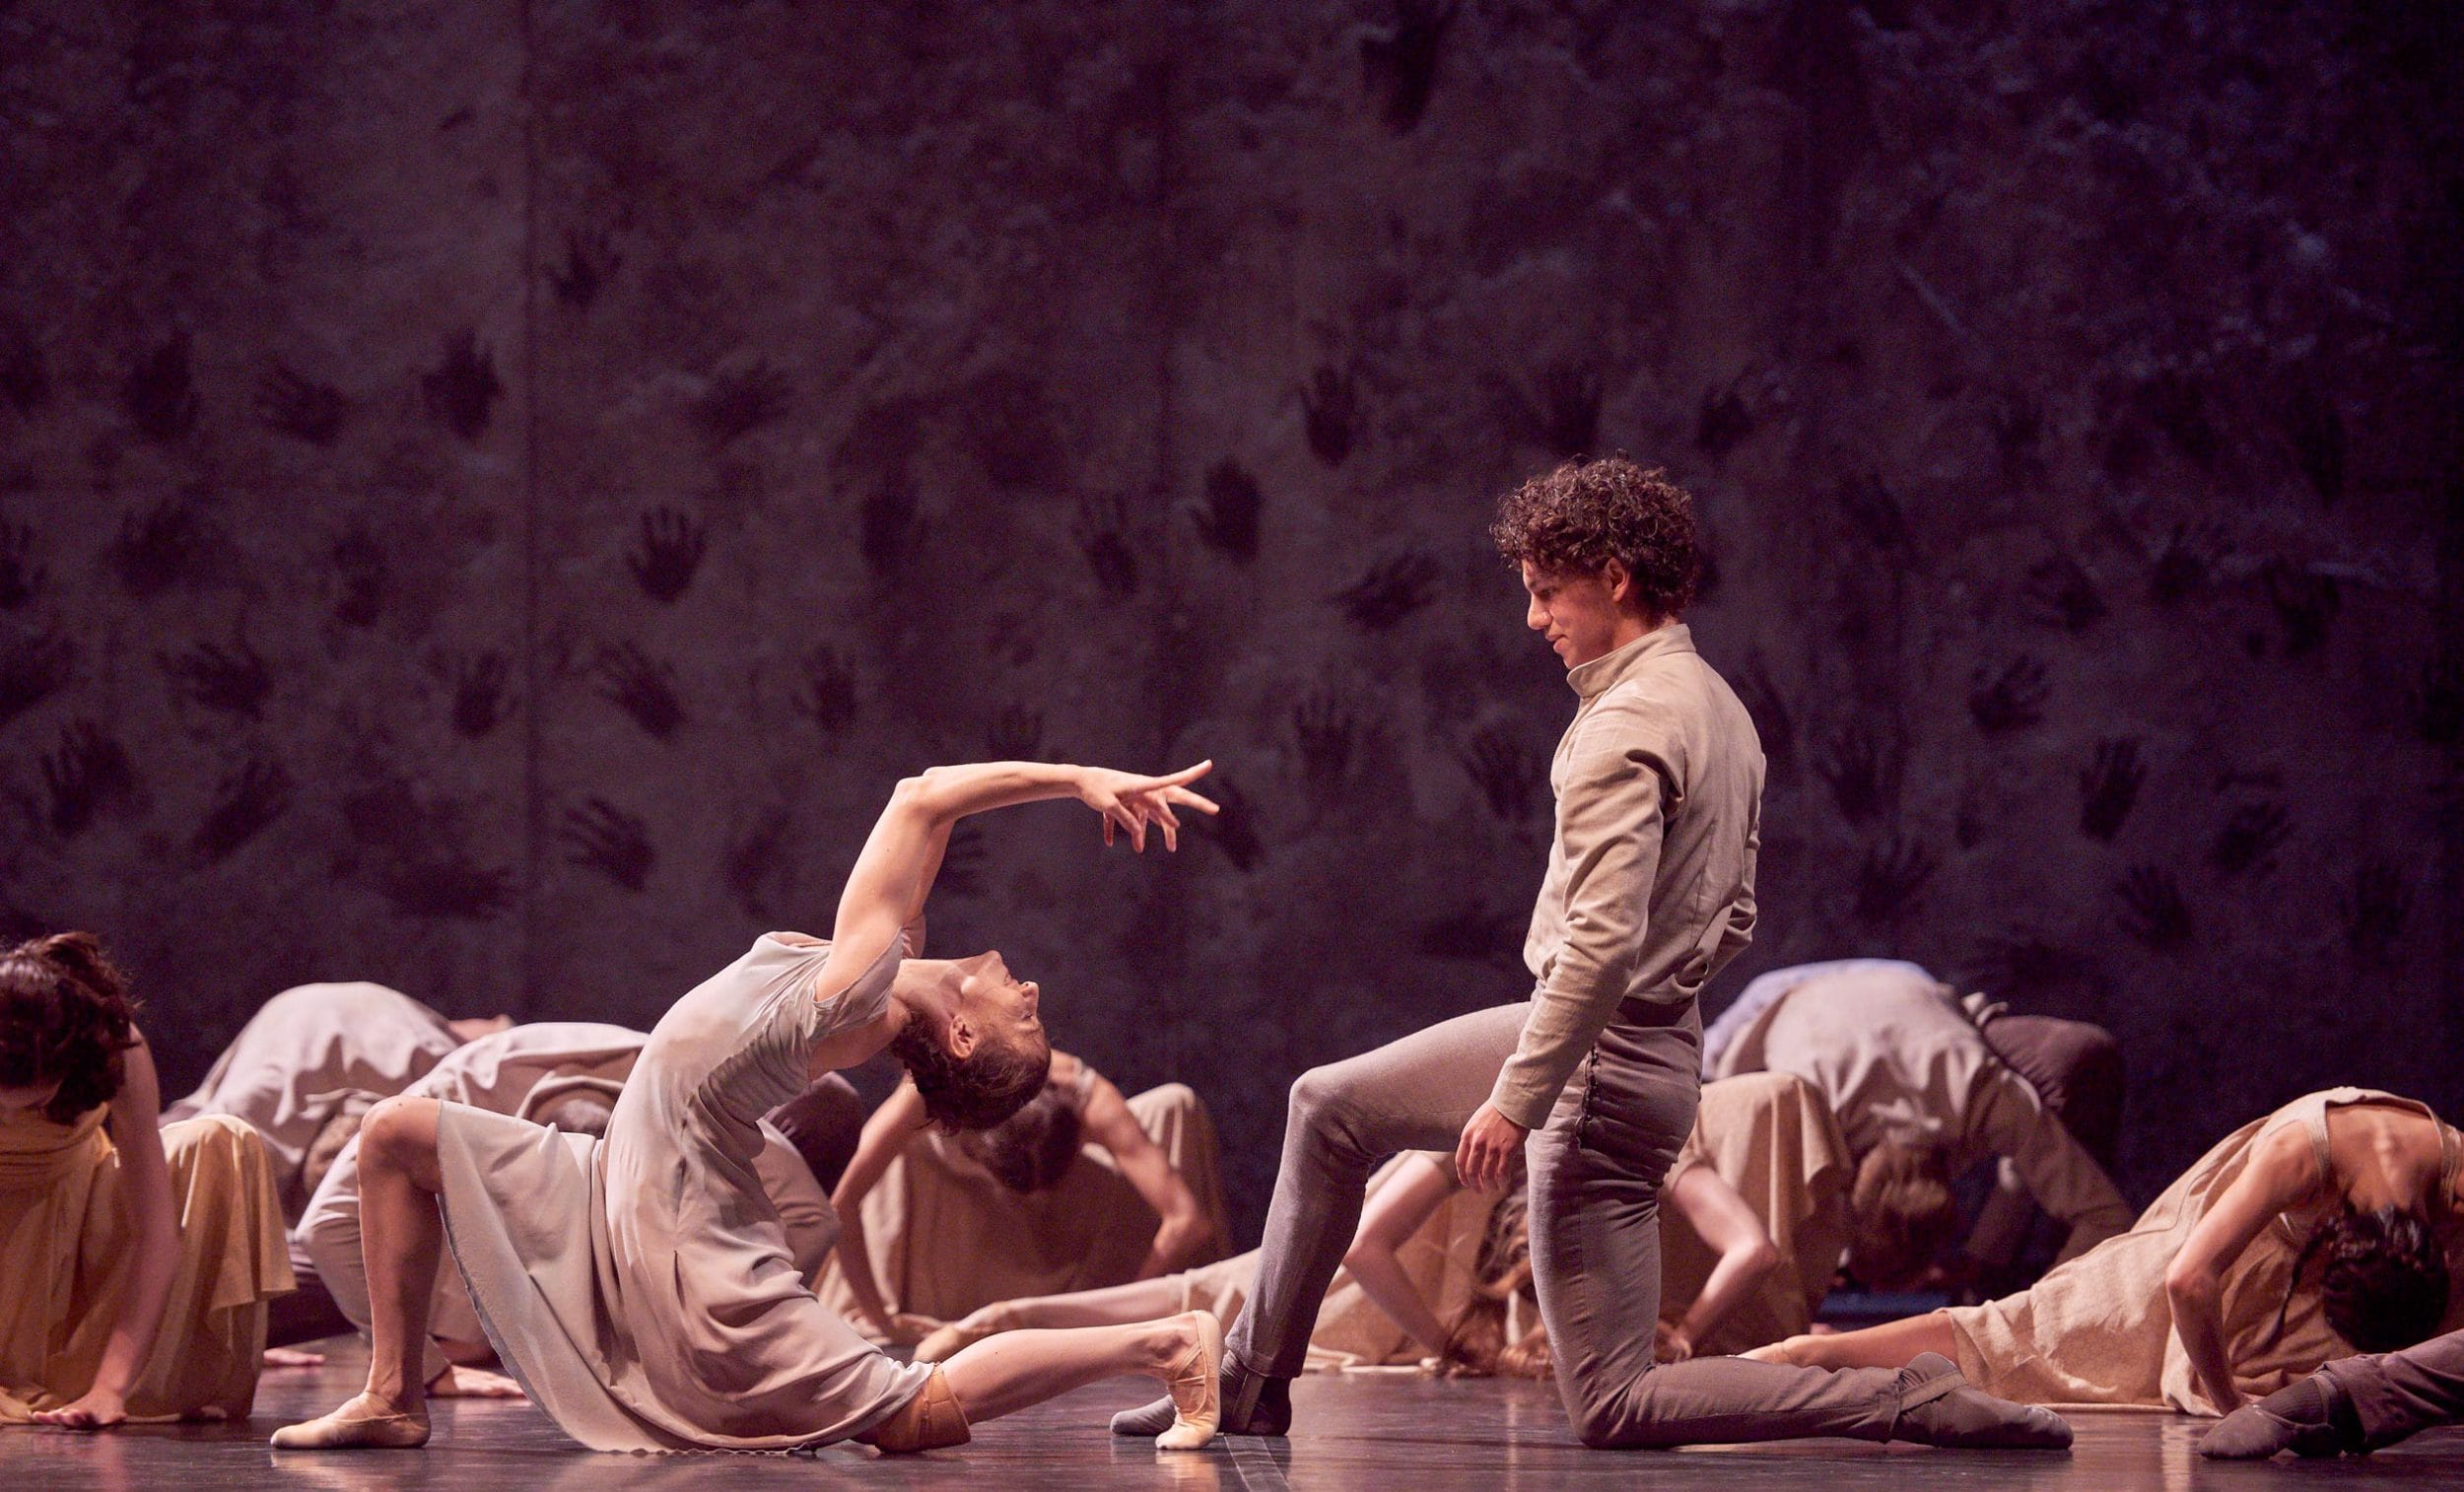 Alina-Cojocaru-and-Isaac-Hernandez-in-Akram-Khan's-Giselle-(c)-Laurent-Liotardo